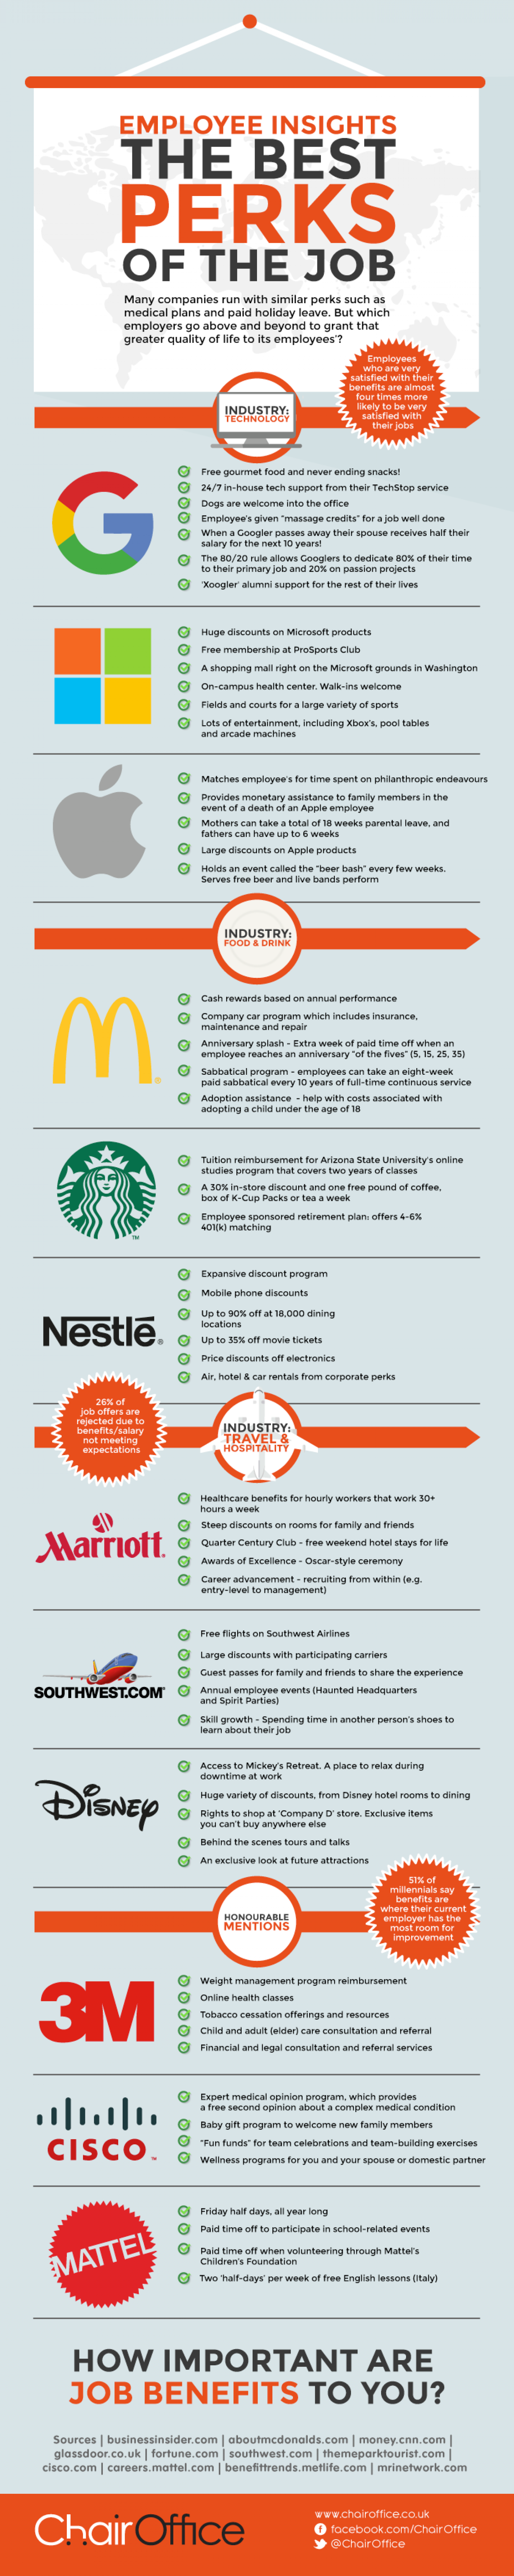 The Best Perks of the Job Infographic